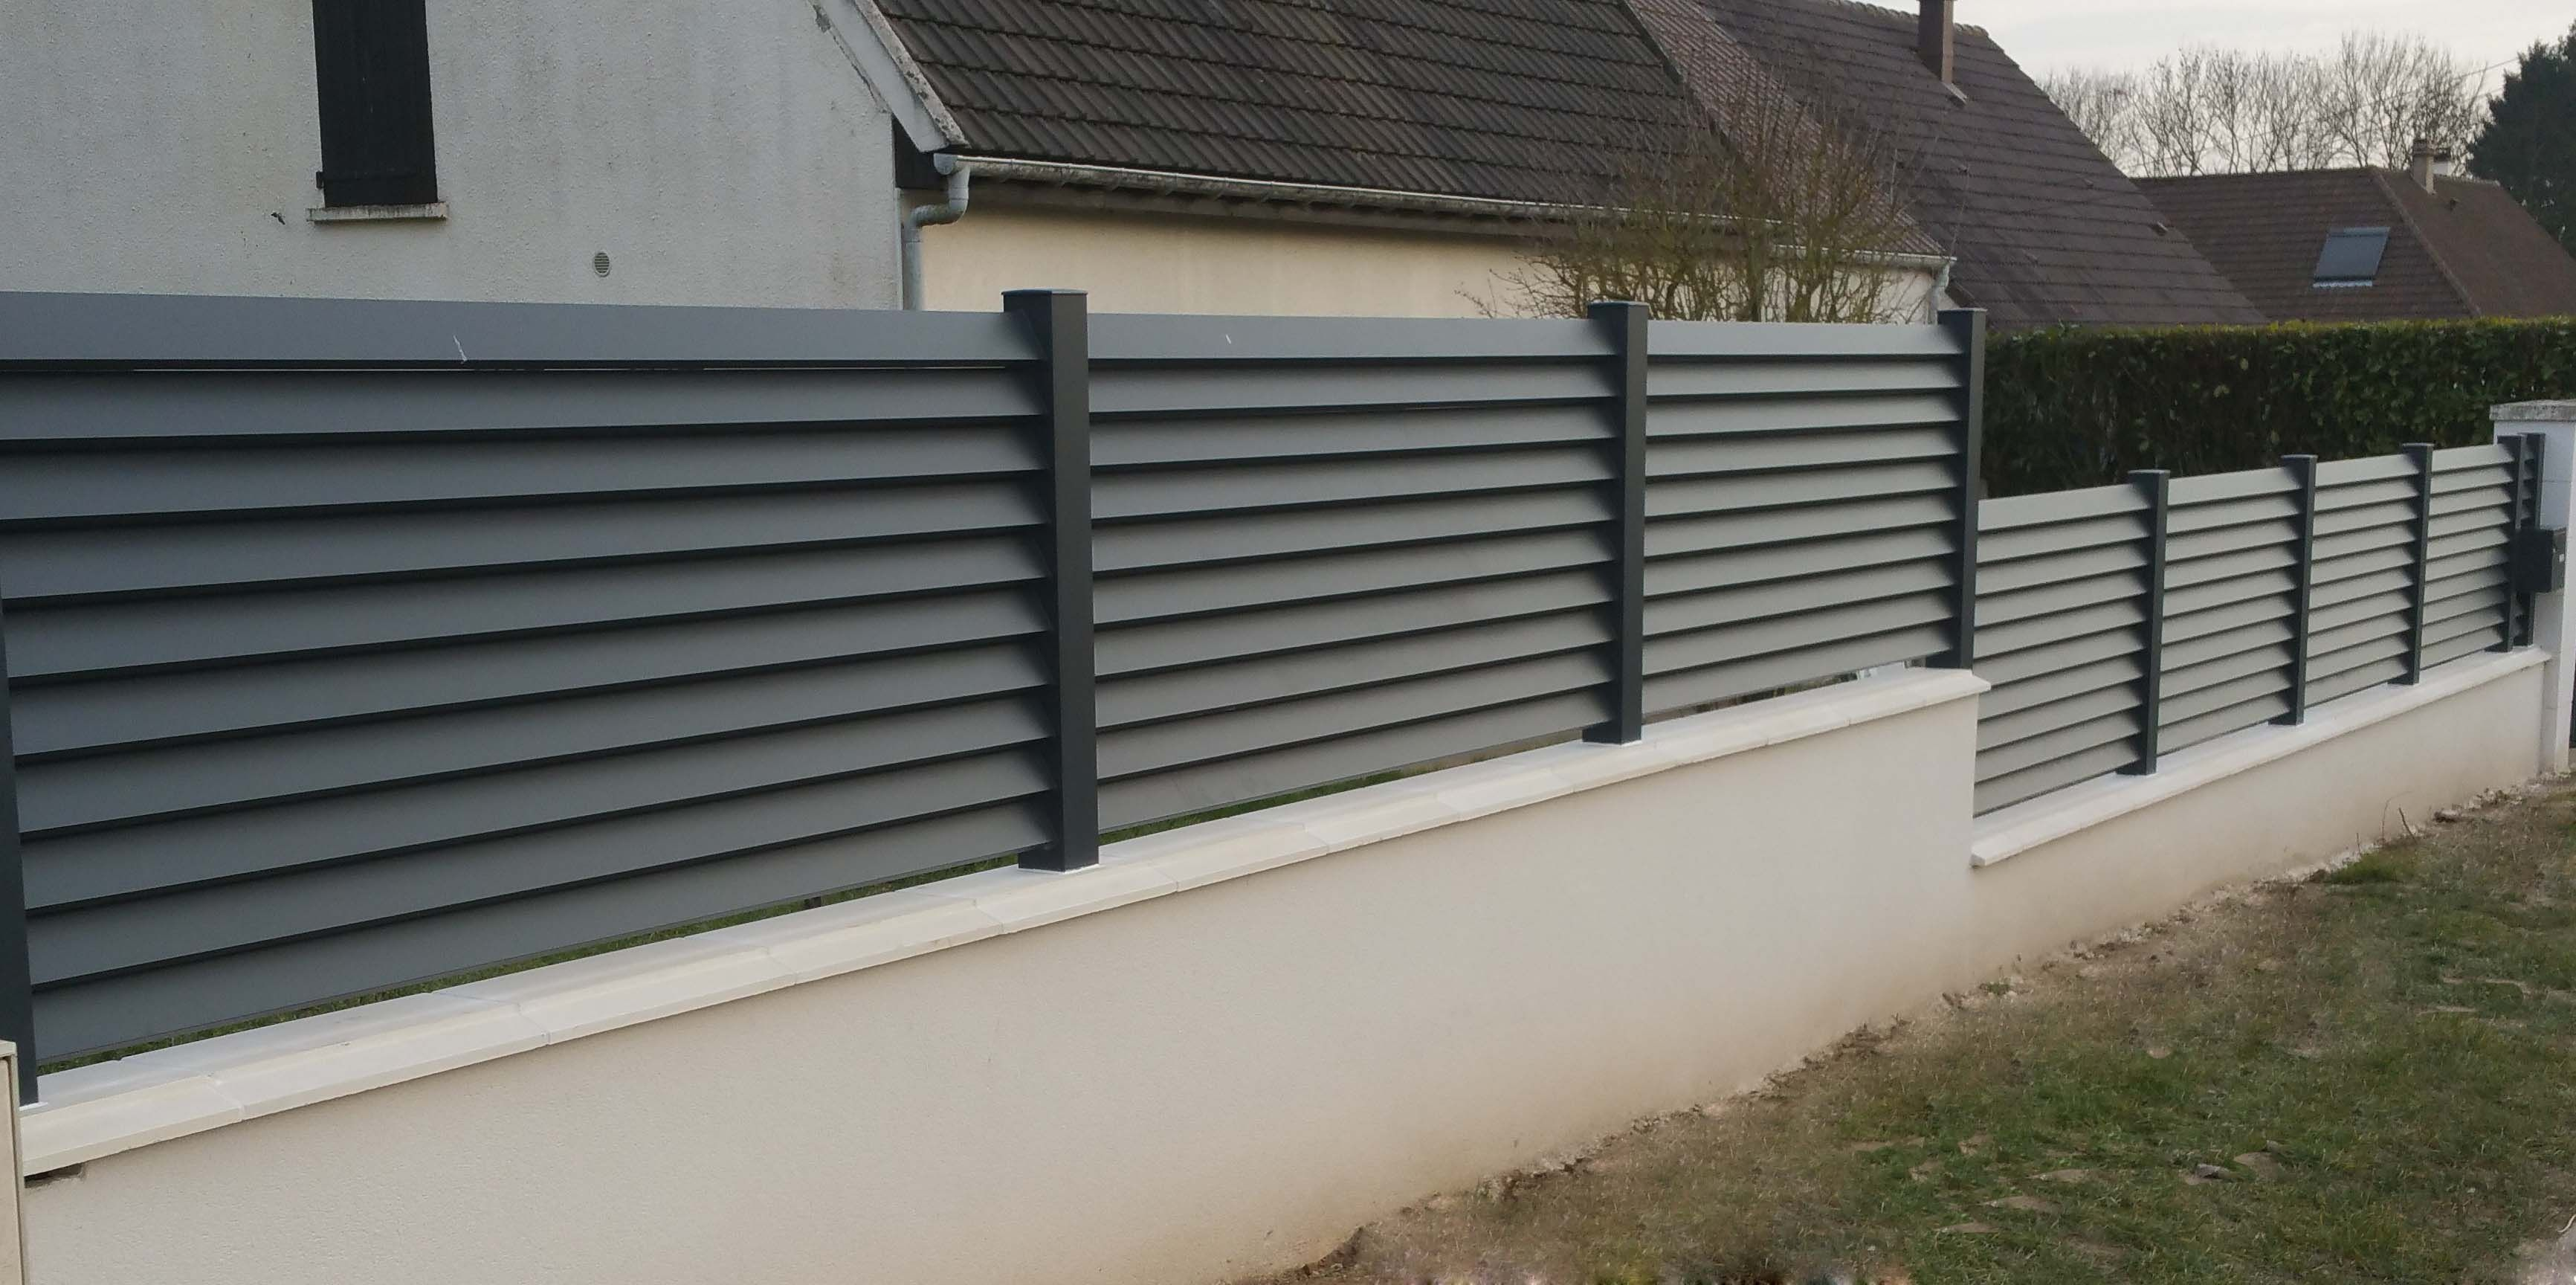 Cl ture en aluminium gris anthracite avec lames persienn es well outdoor pinterest for Palissade pvc gris